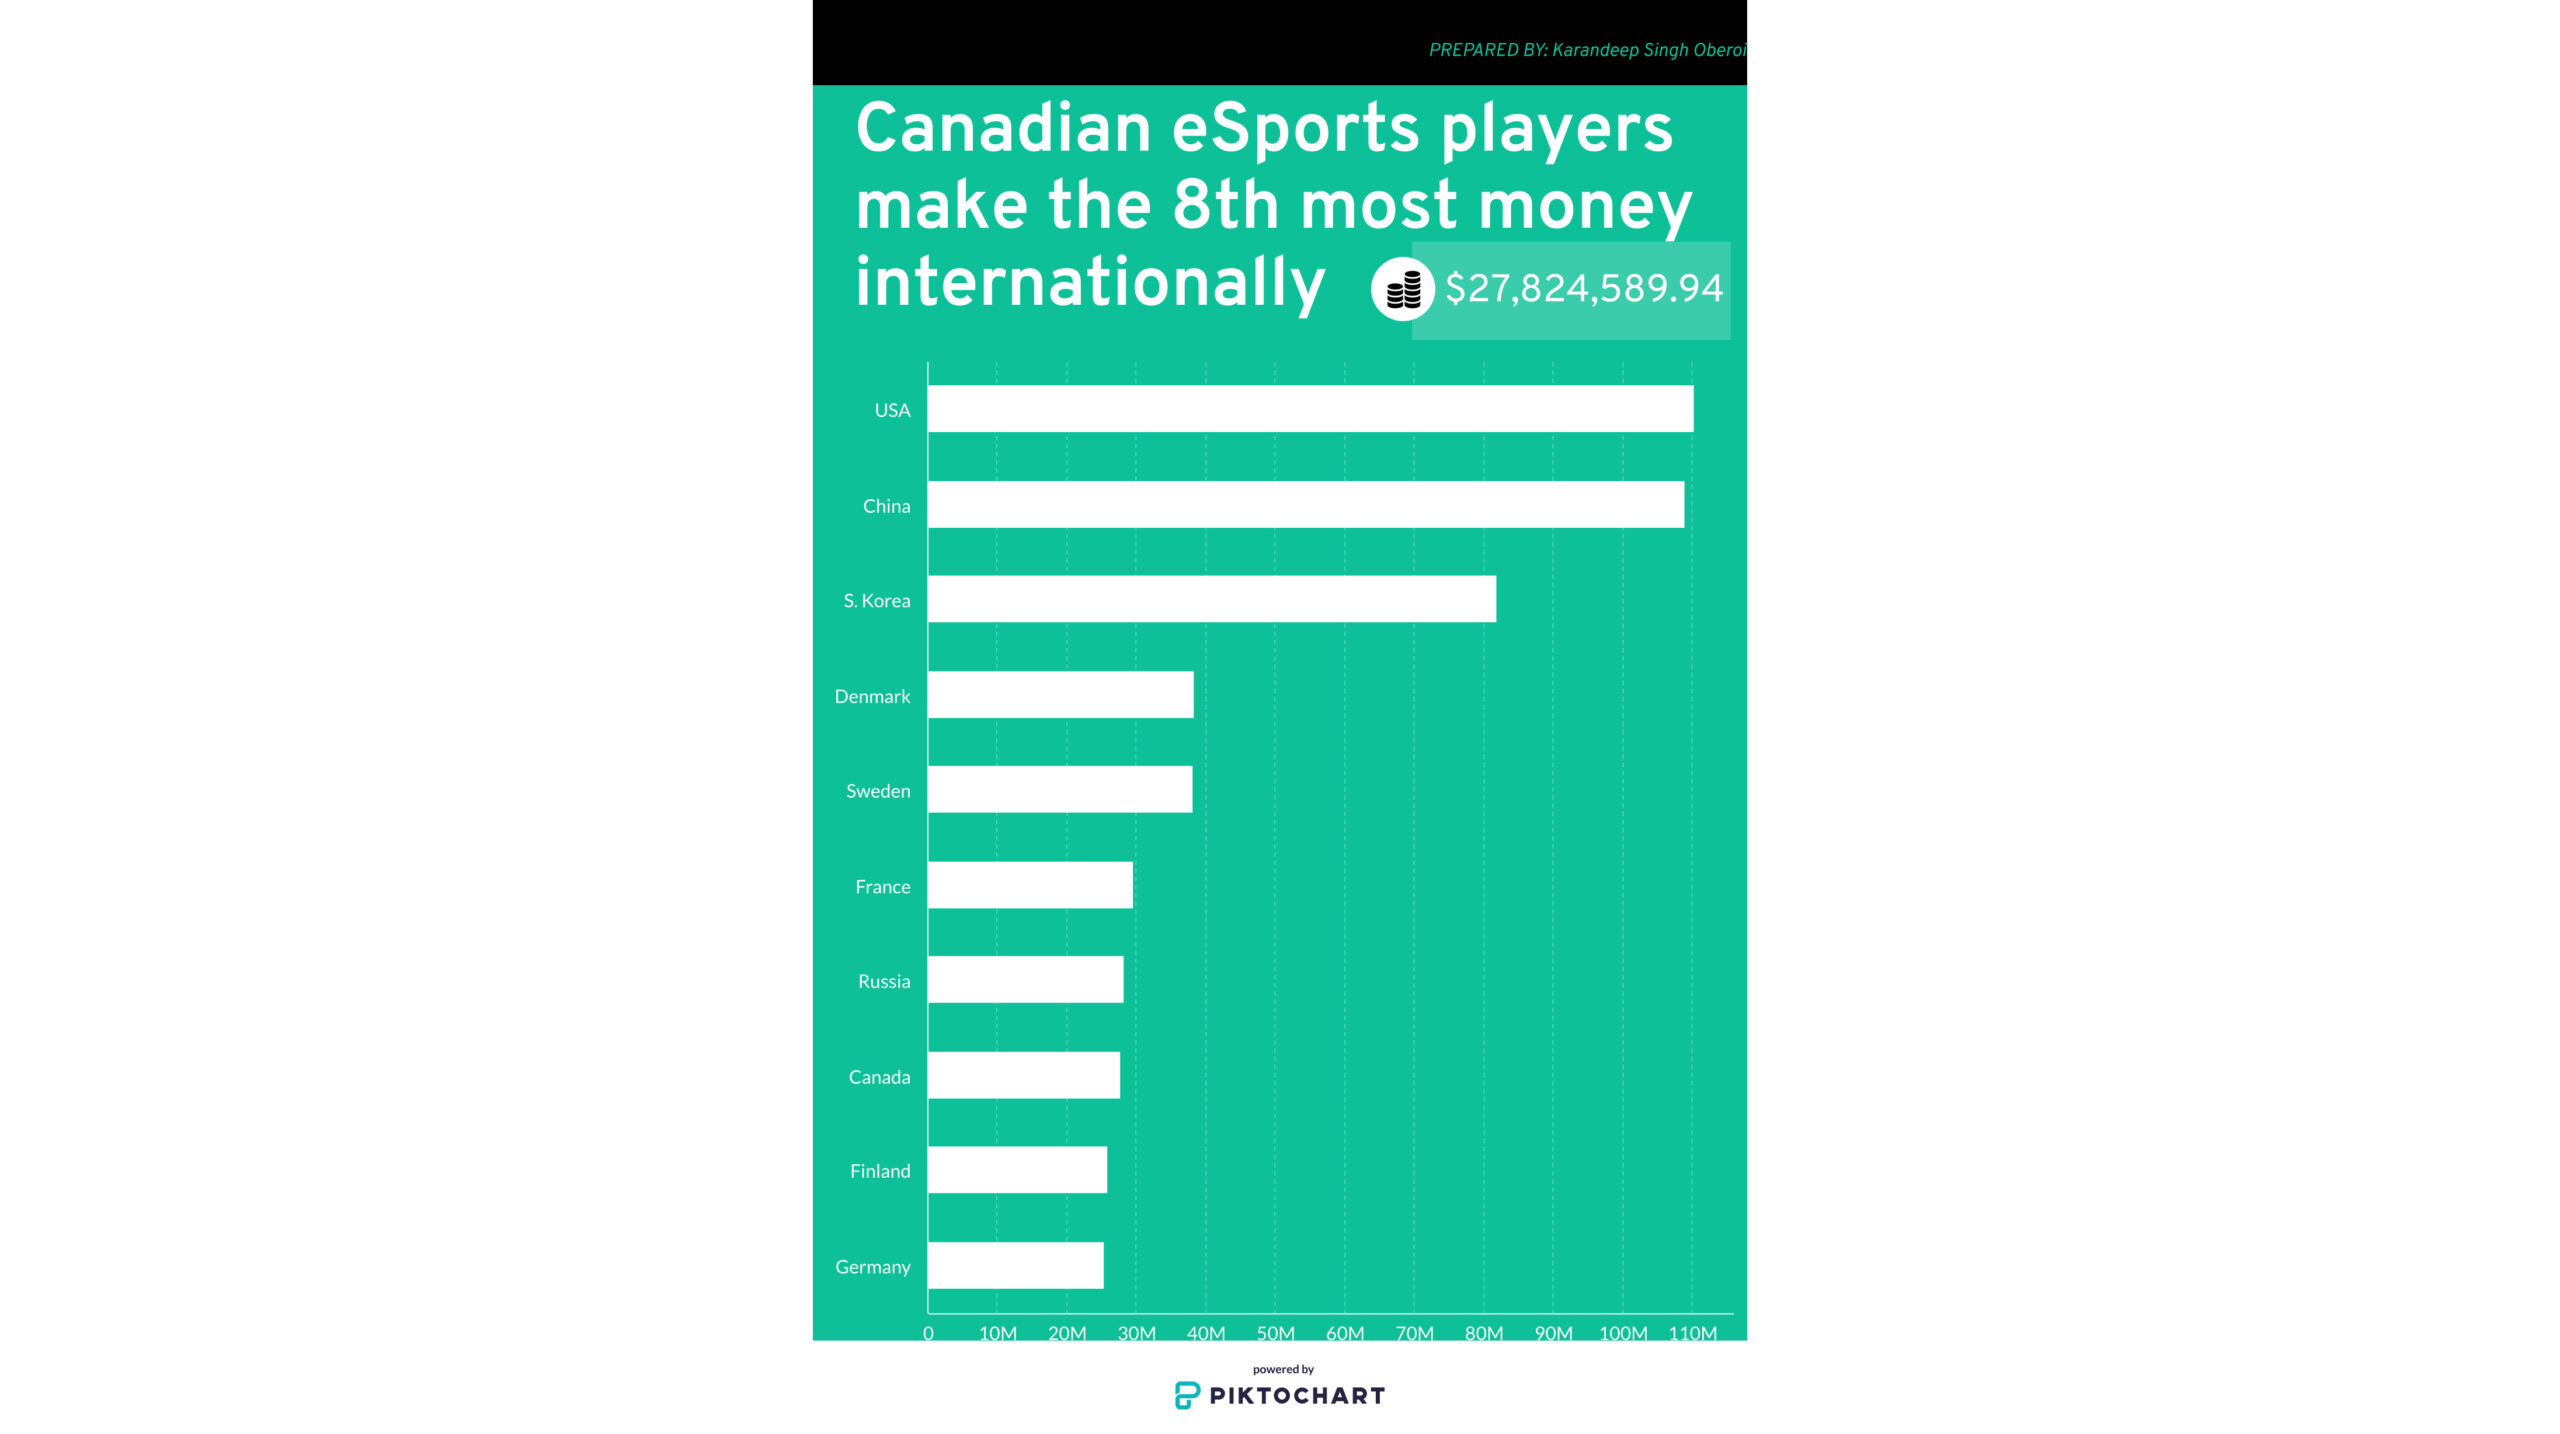 Top 10 countries in esports earning